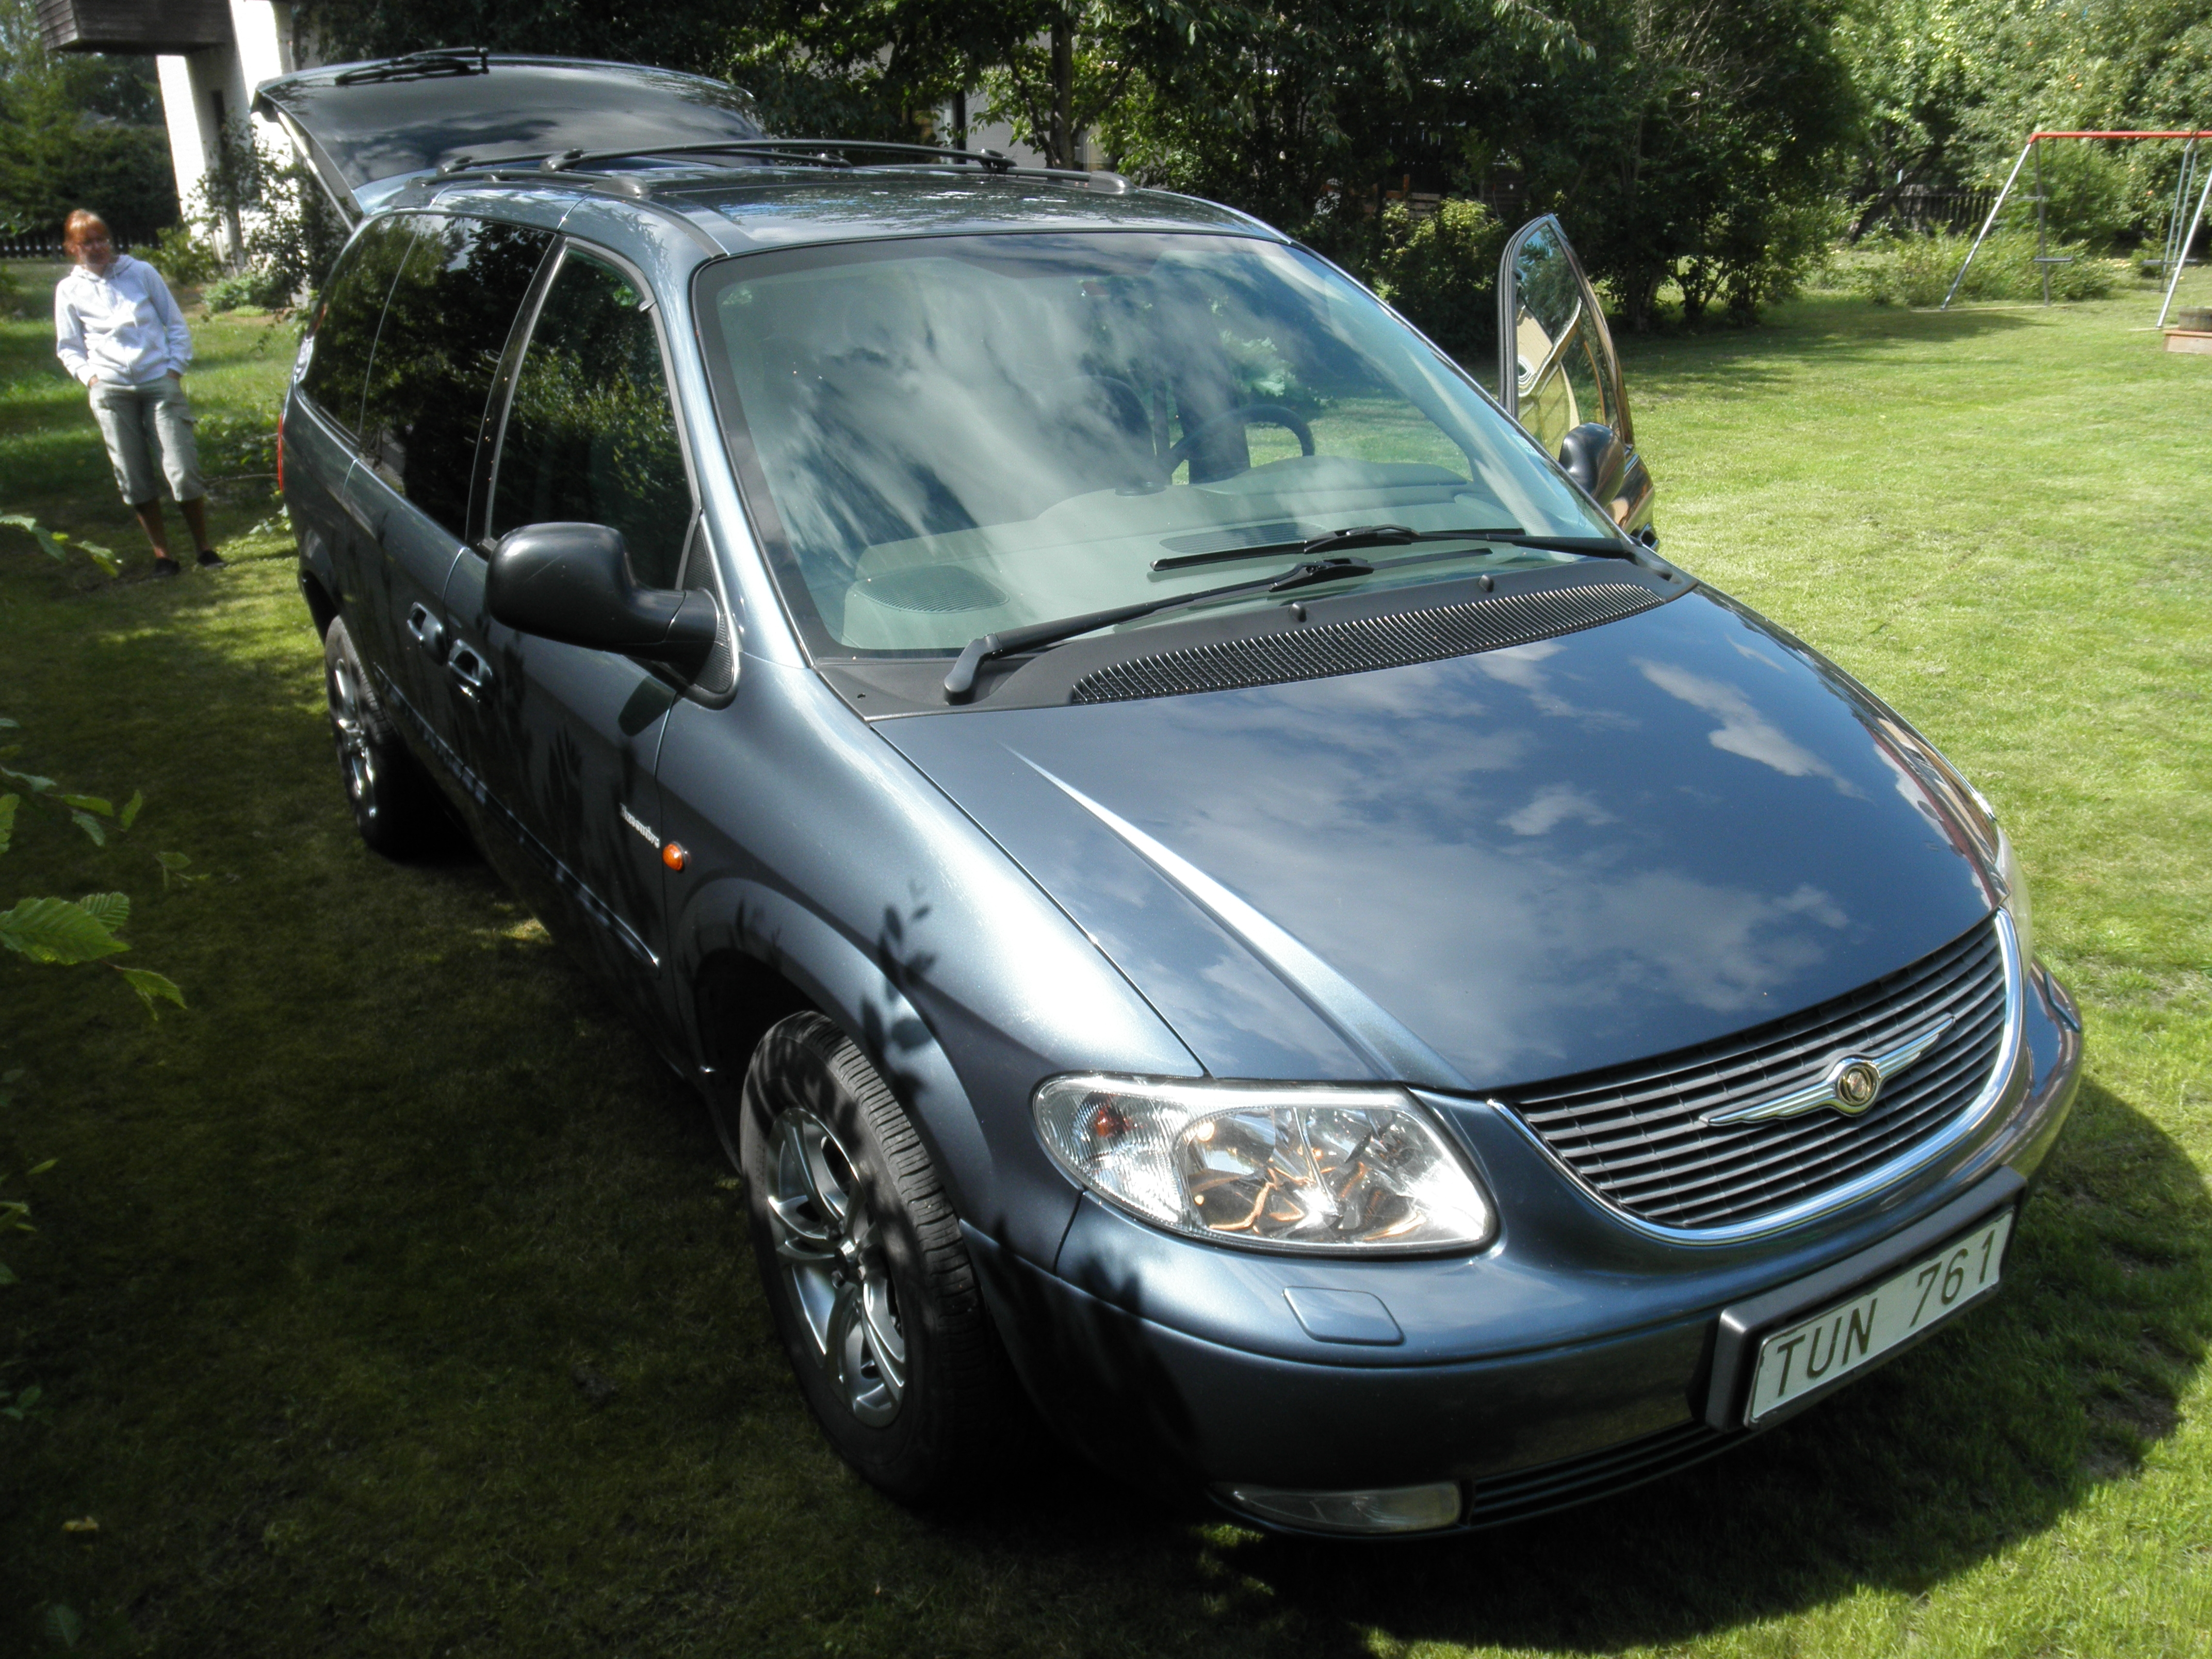 bosse 2003 chrysler grand voyager specs photos modification info at cardomain. Black Bedroom Furniture Sets. Home Design Ideas